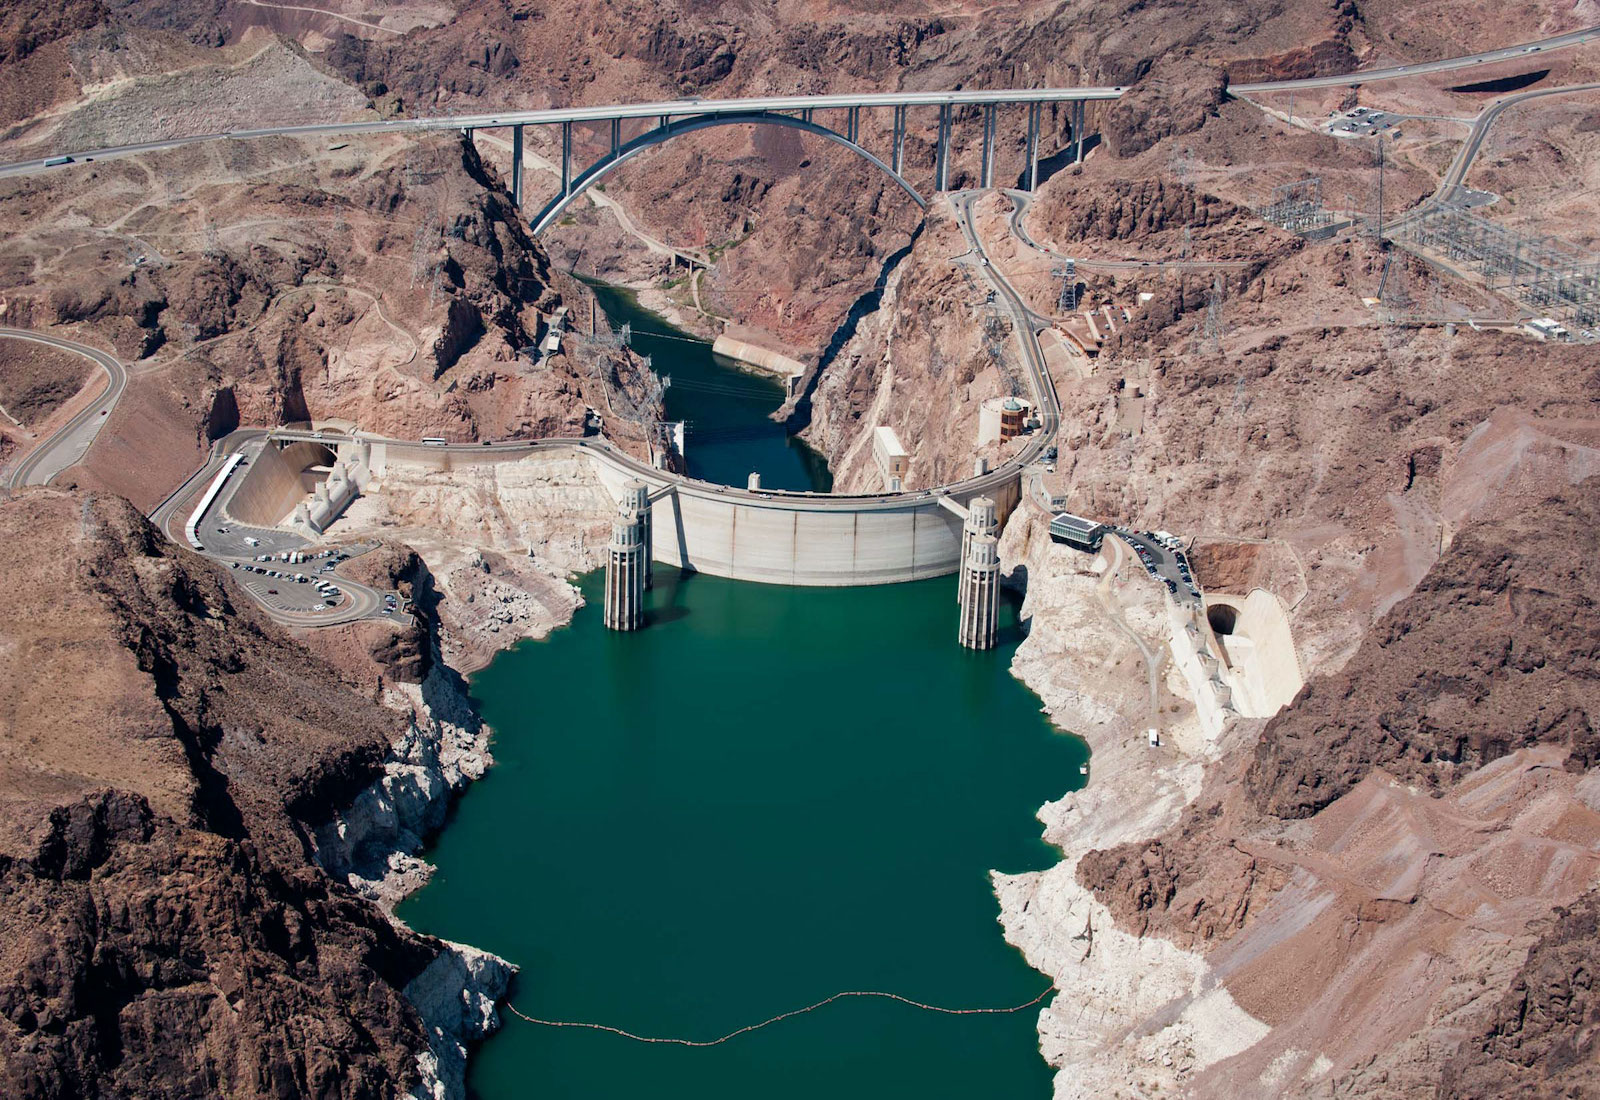 Lake Mead's elevation